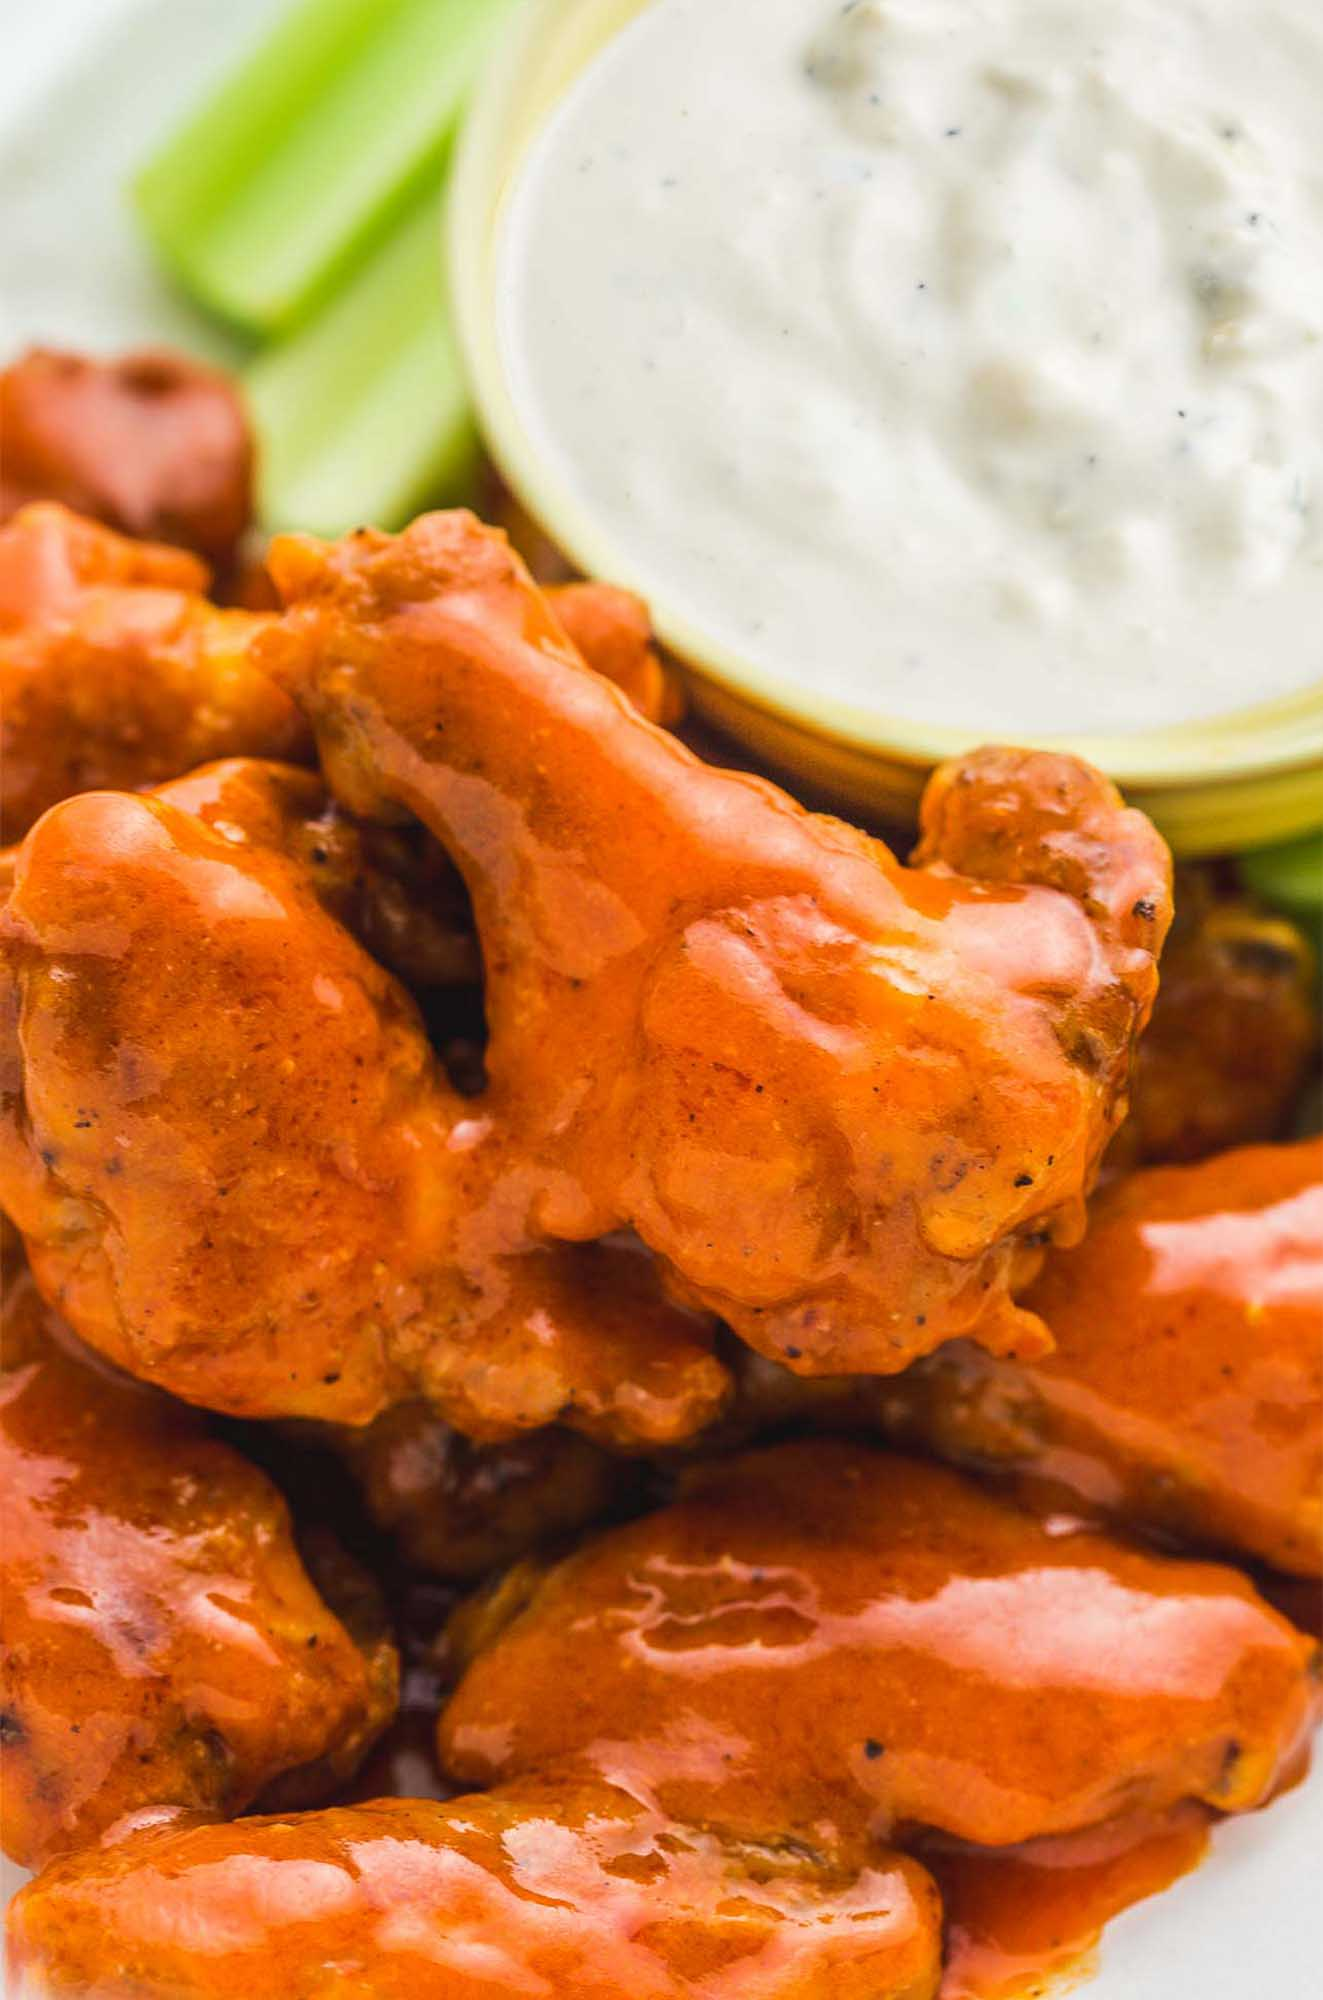 Saucy buffalo chicken wings with blue cheese dip in the background